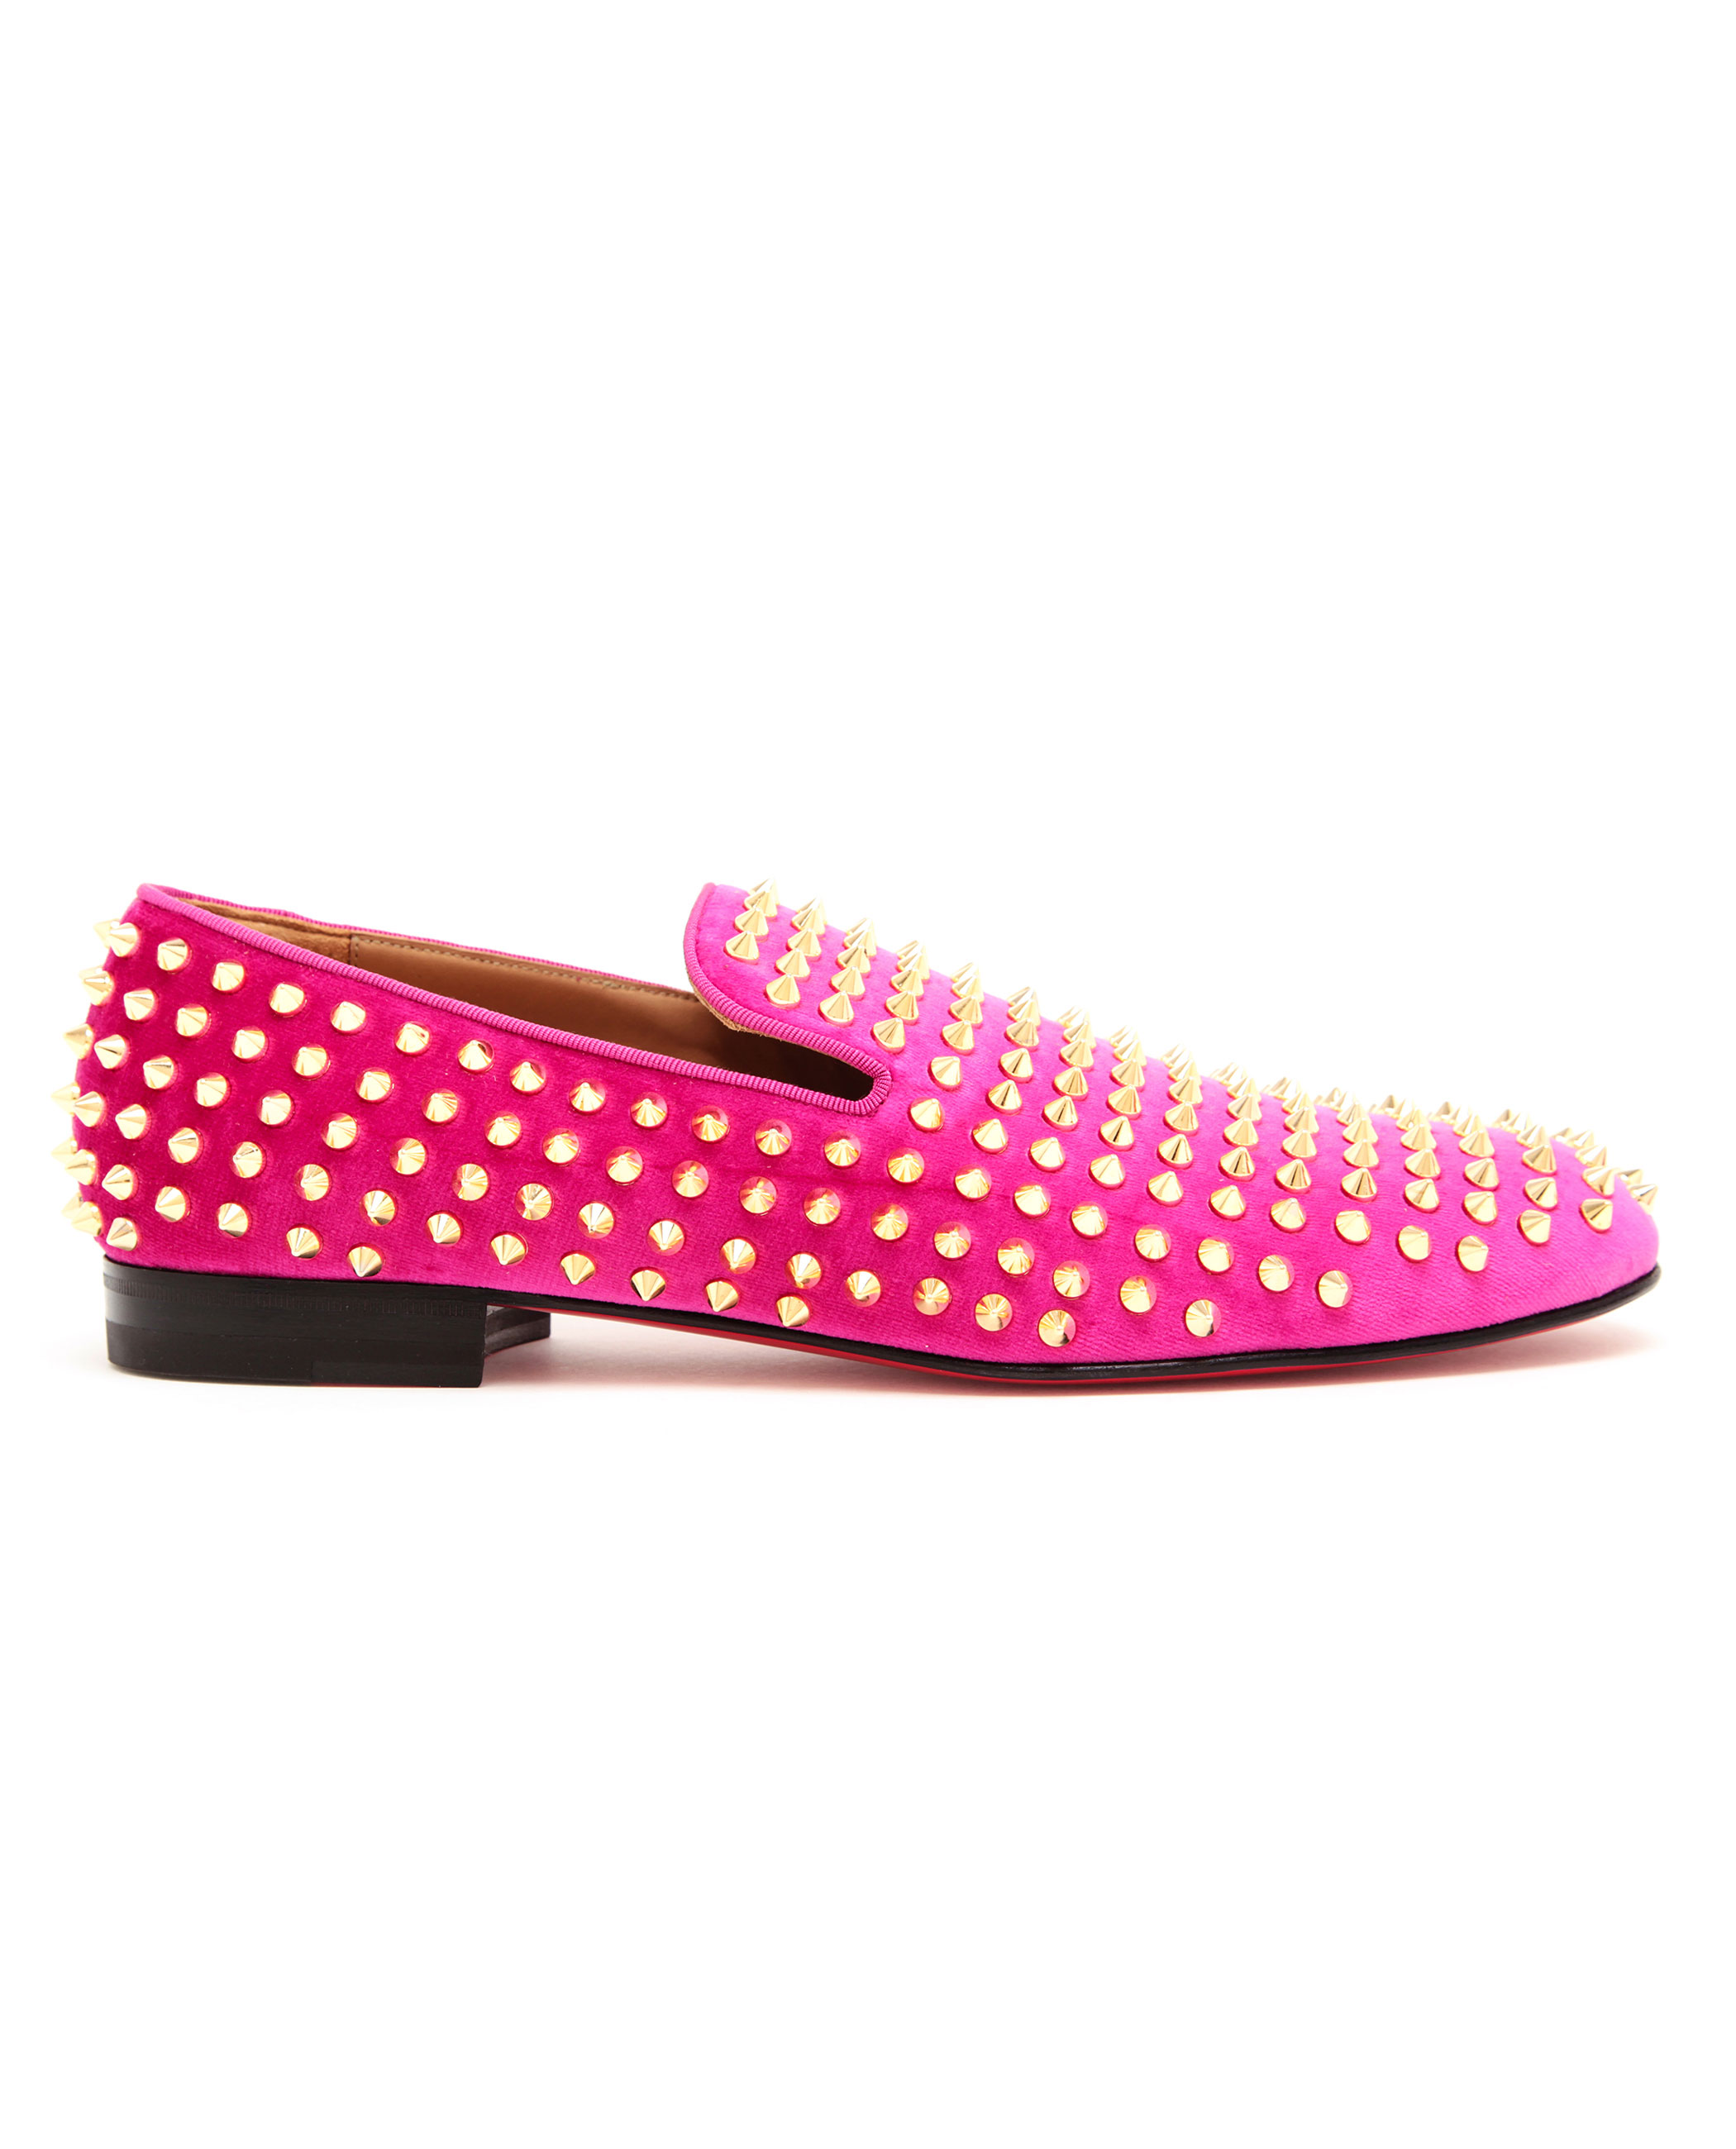 6ecc185fa9a Christian Louboutin Roller-boys Spiked Velvet Loafers in Pink for ...